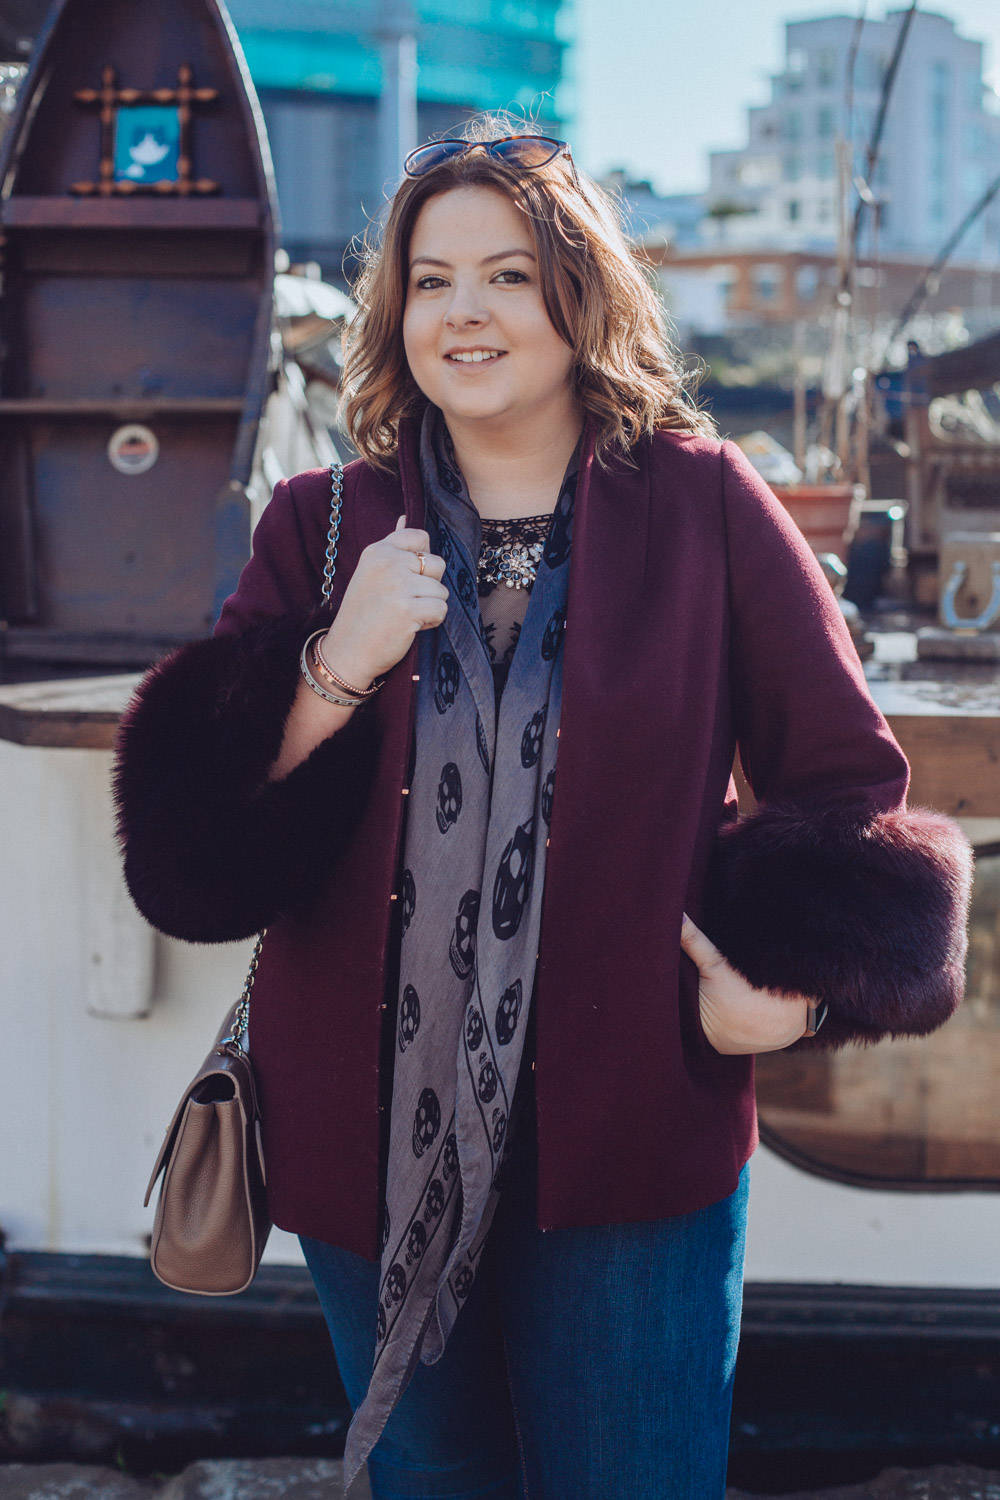 The Ted Baker coat of dreams